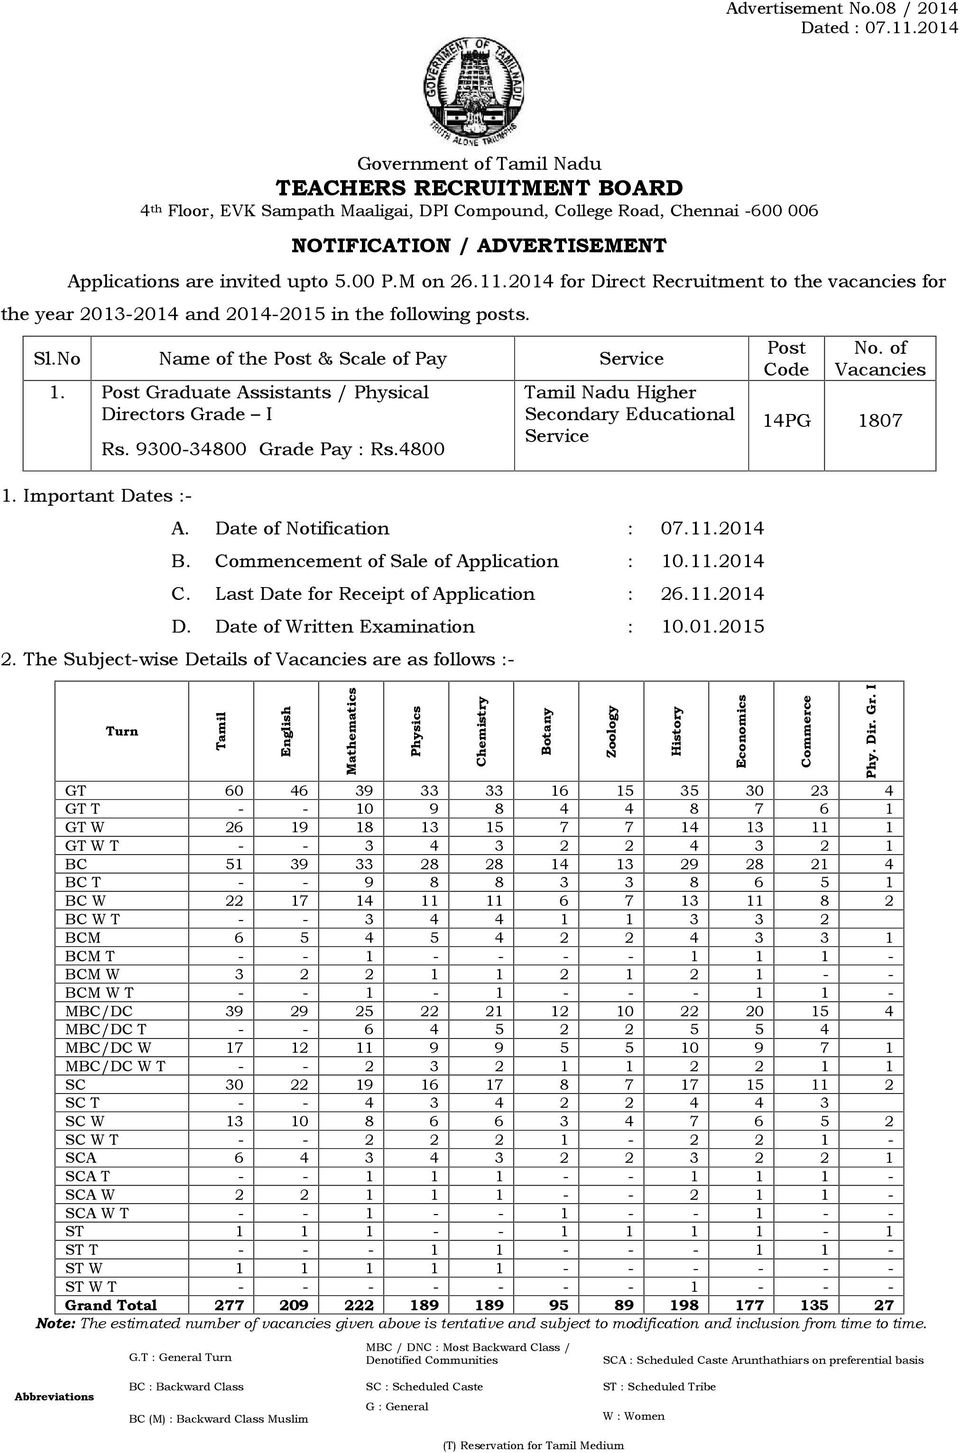 00 P.M on 26.11.2014 for Direct Recruitment to the vacancies for the year 2013-2014 and 2014-2015 in the following posts. Sl.No Name of the Post & Scale of Pay Service 1.